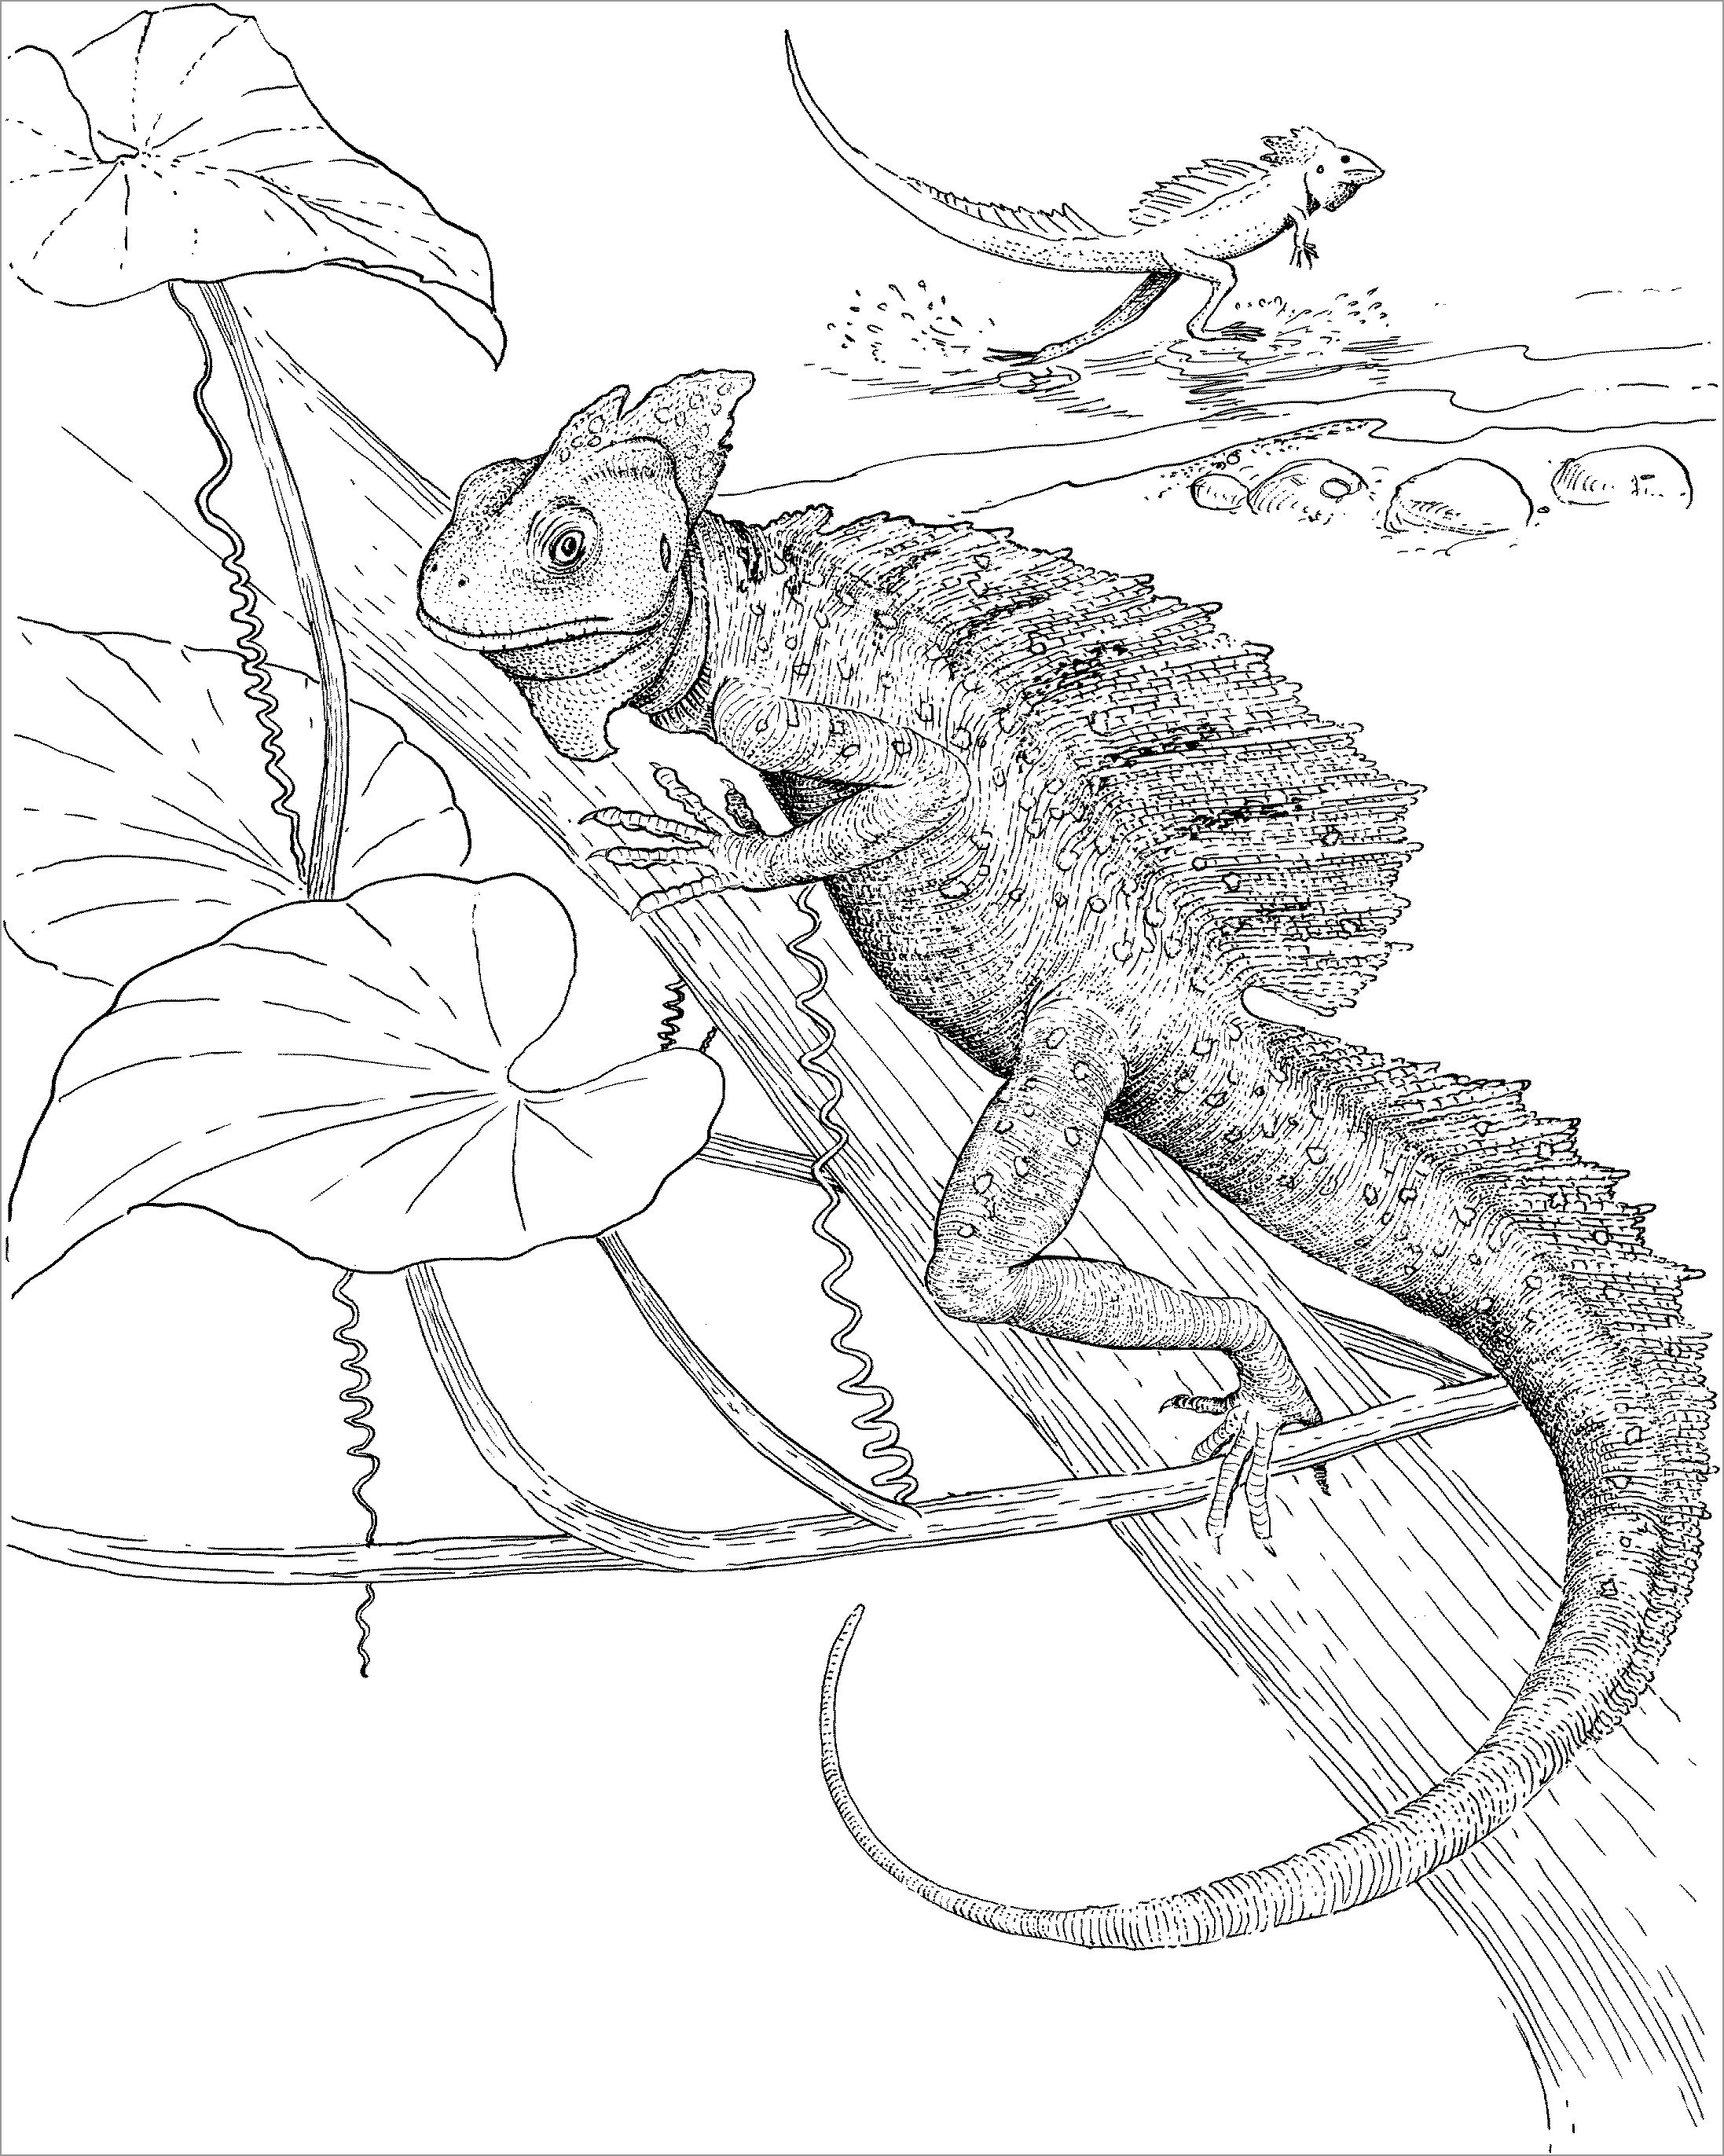 picture of a lizard to colour in printable lizard coloring pages for kids cool2bkids a lizard to of in picture colour